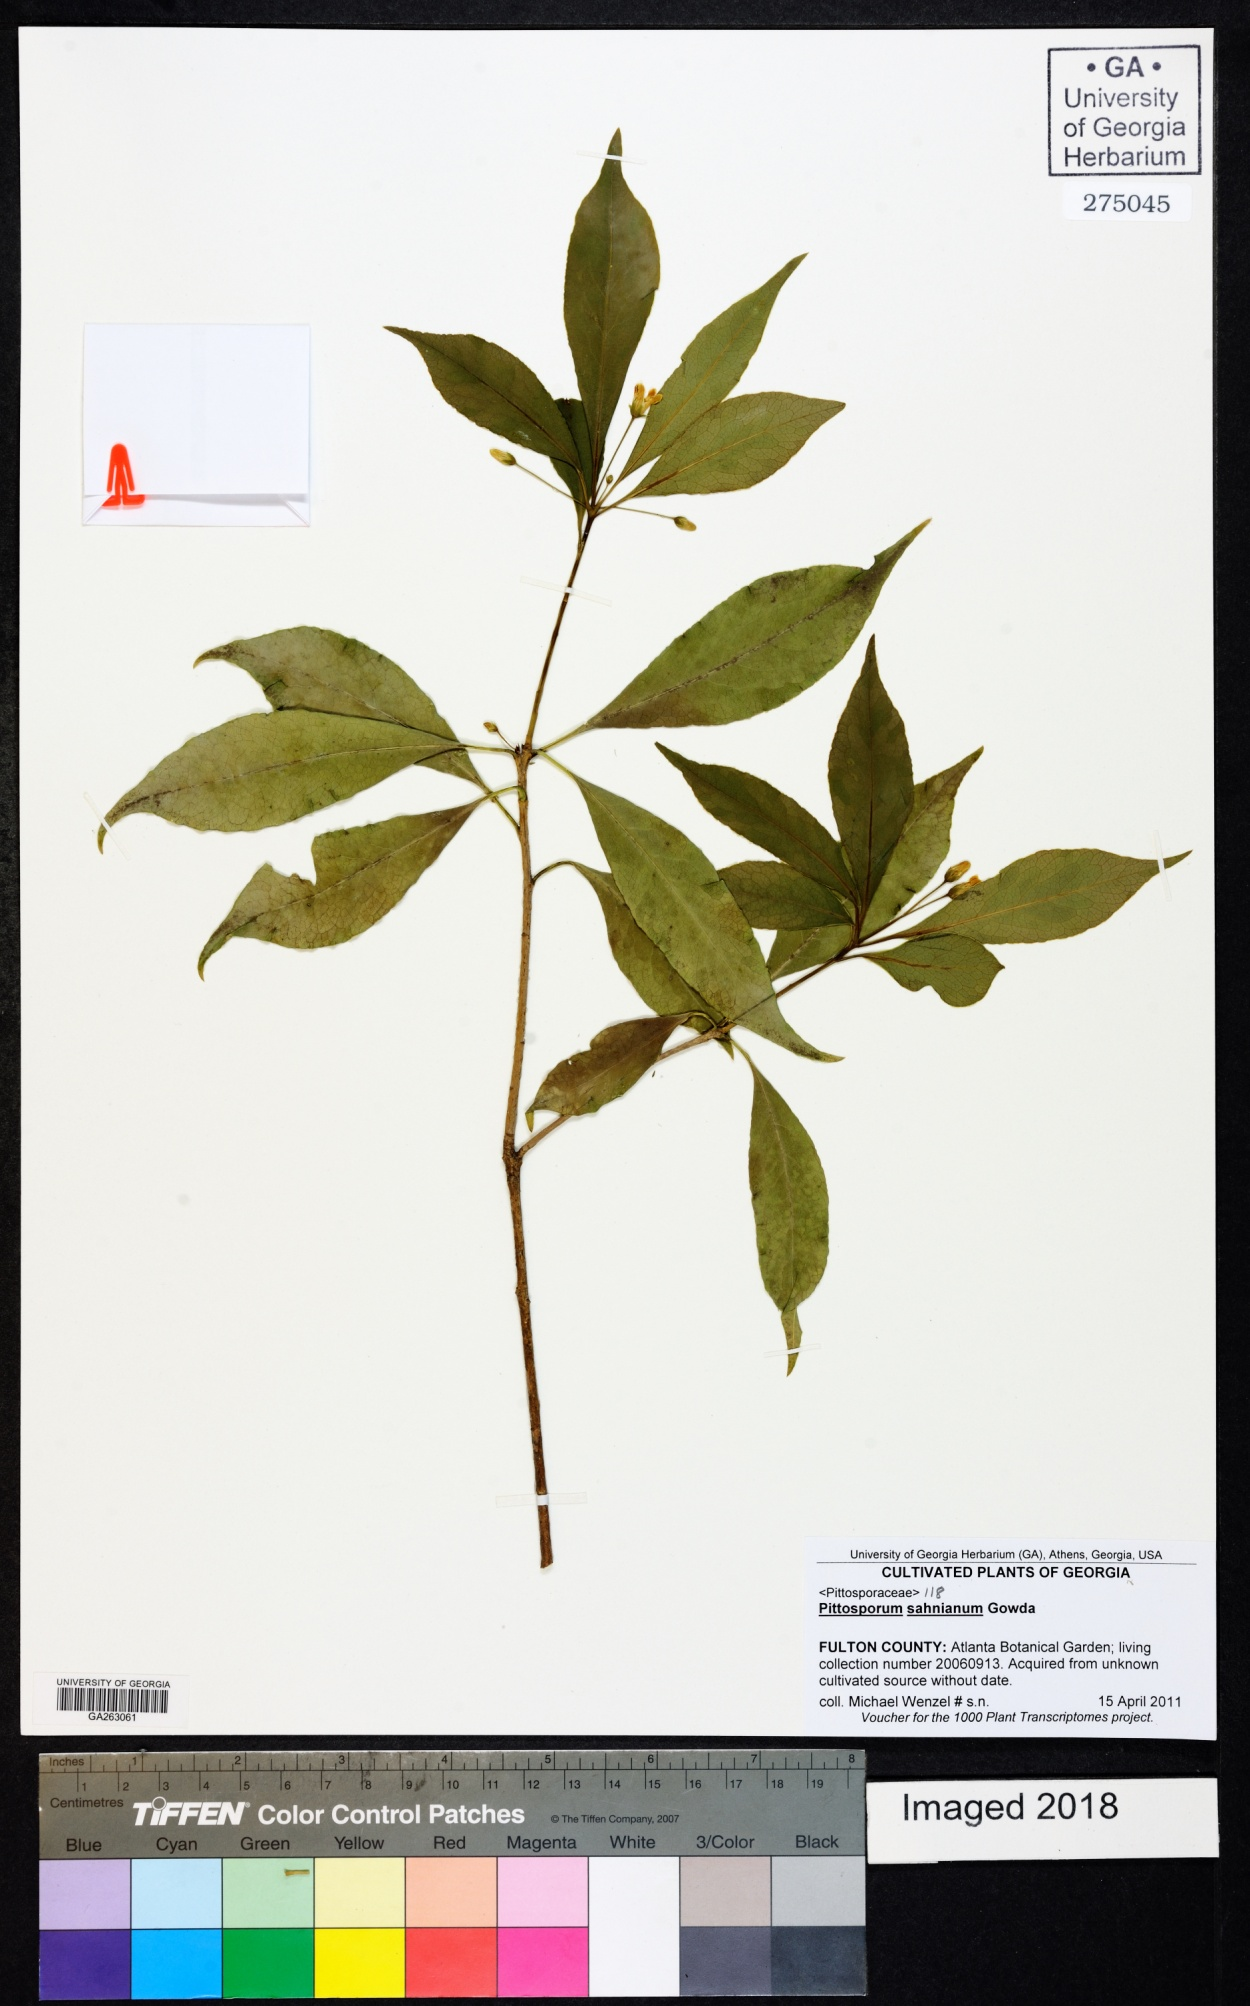 Pittosporum illicioides image